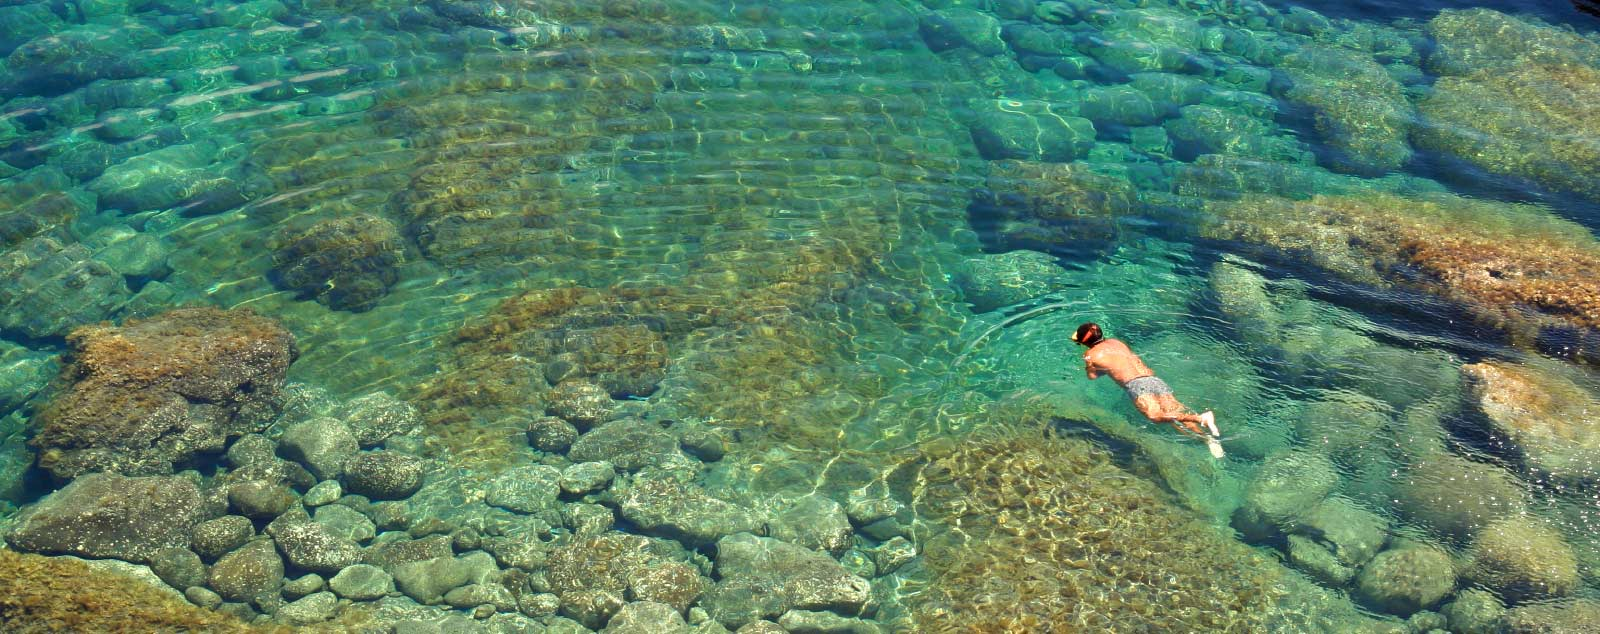 a man snorkelling in crystal clear waters